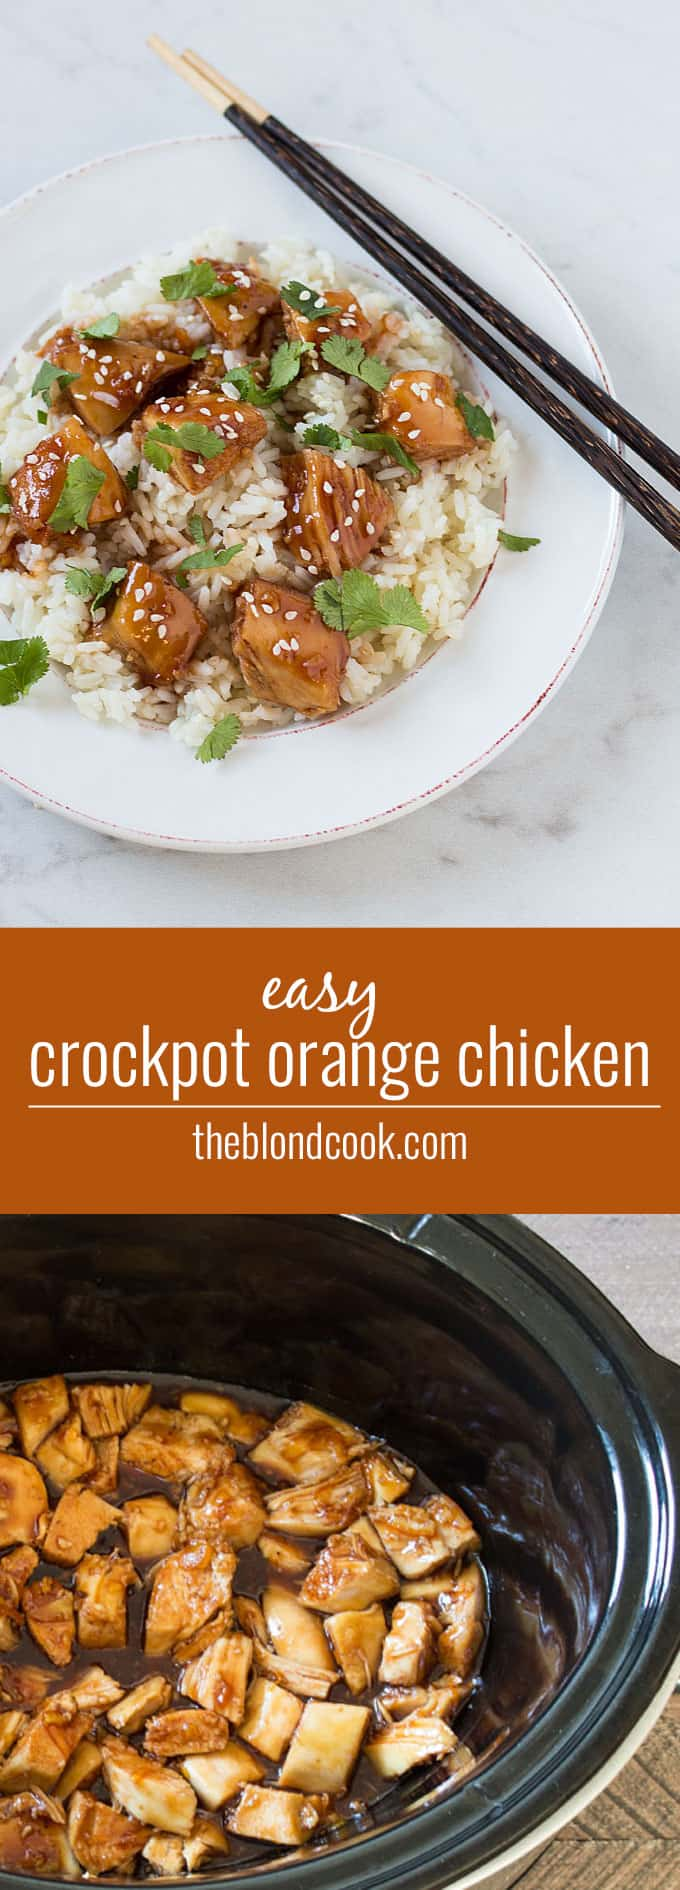 Easy Crockpot Orange Chicken -- Skip takeout and throw together a few ingredients for the most flavorful chicken!